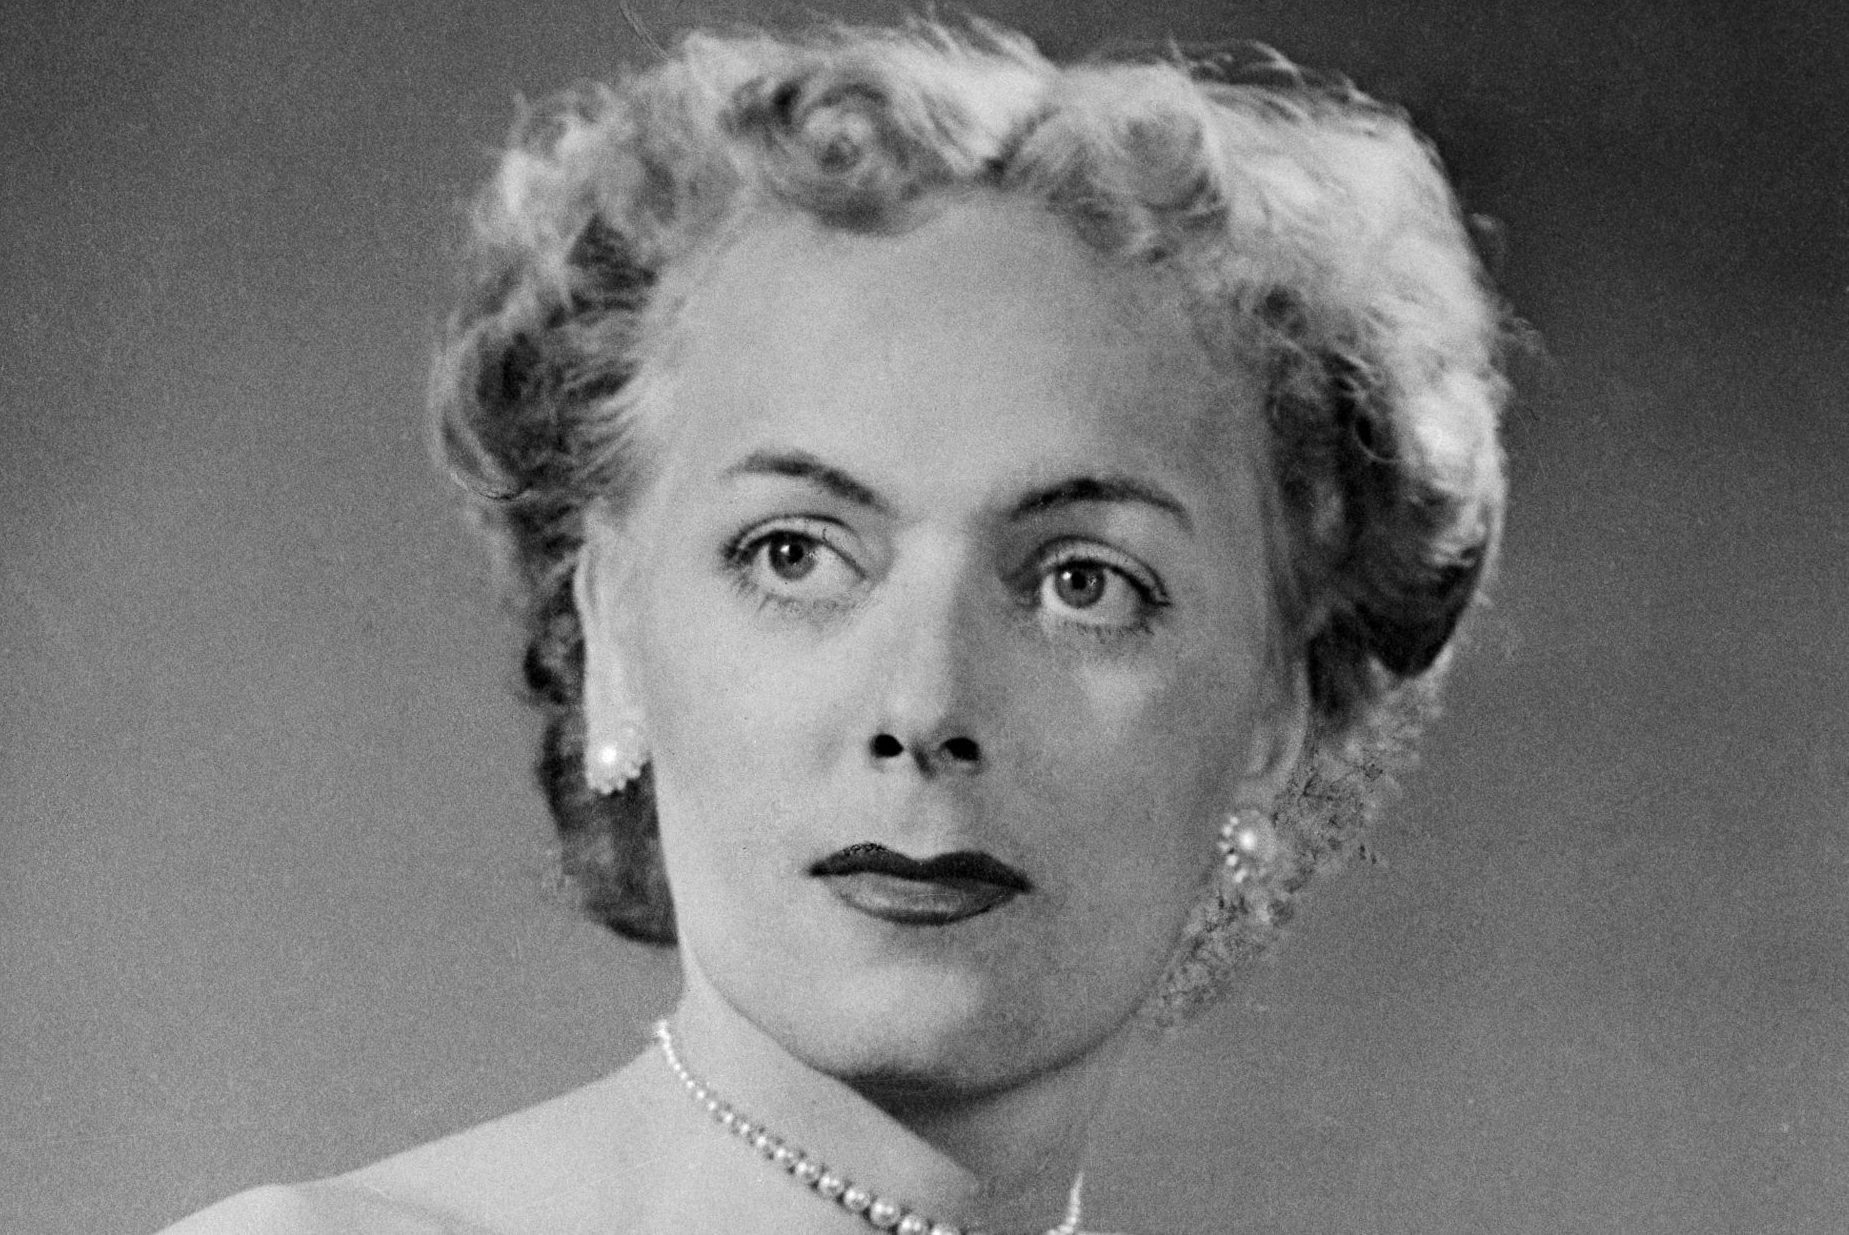 Christine Jorgensen Showing New Appearance